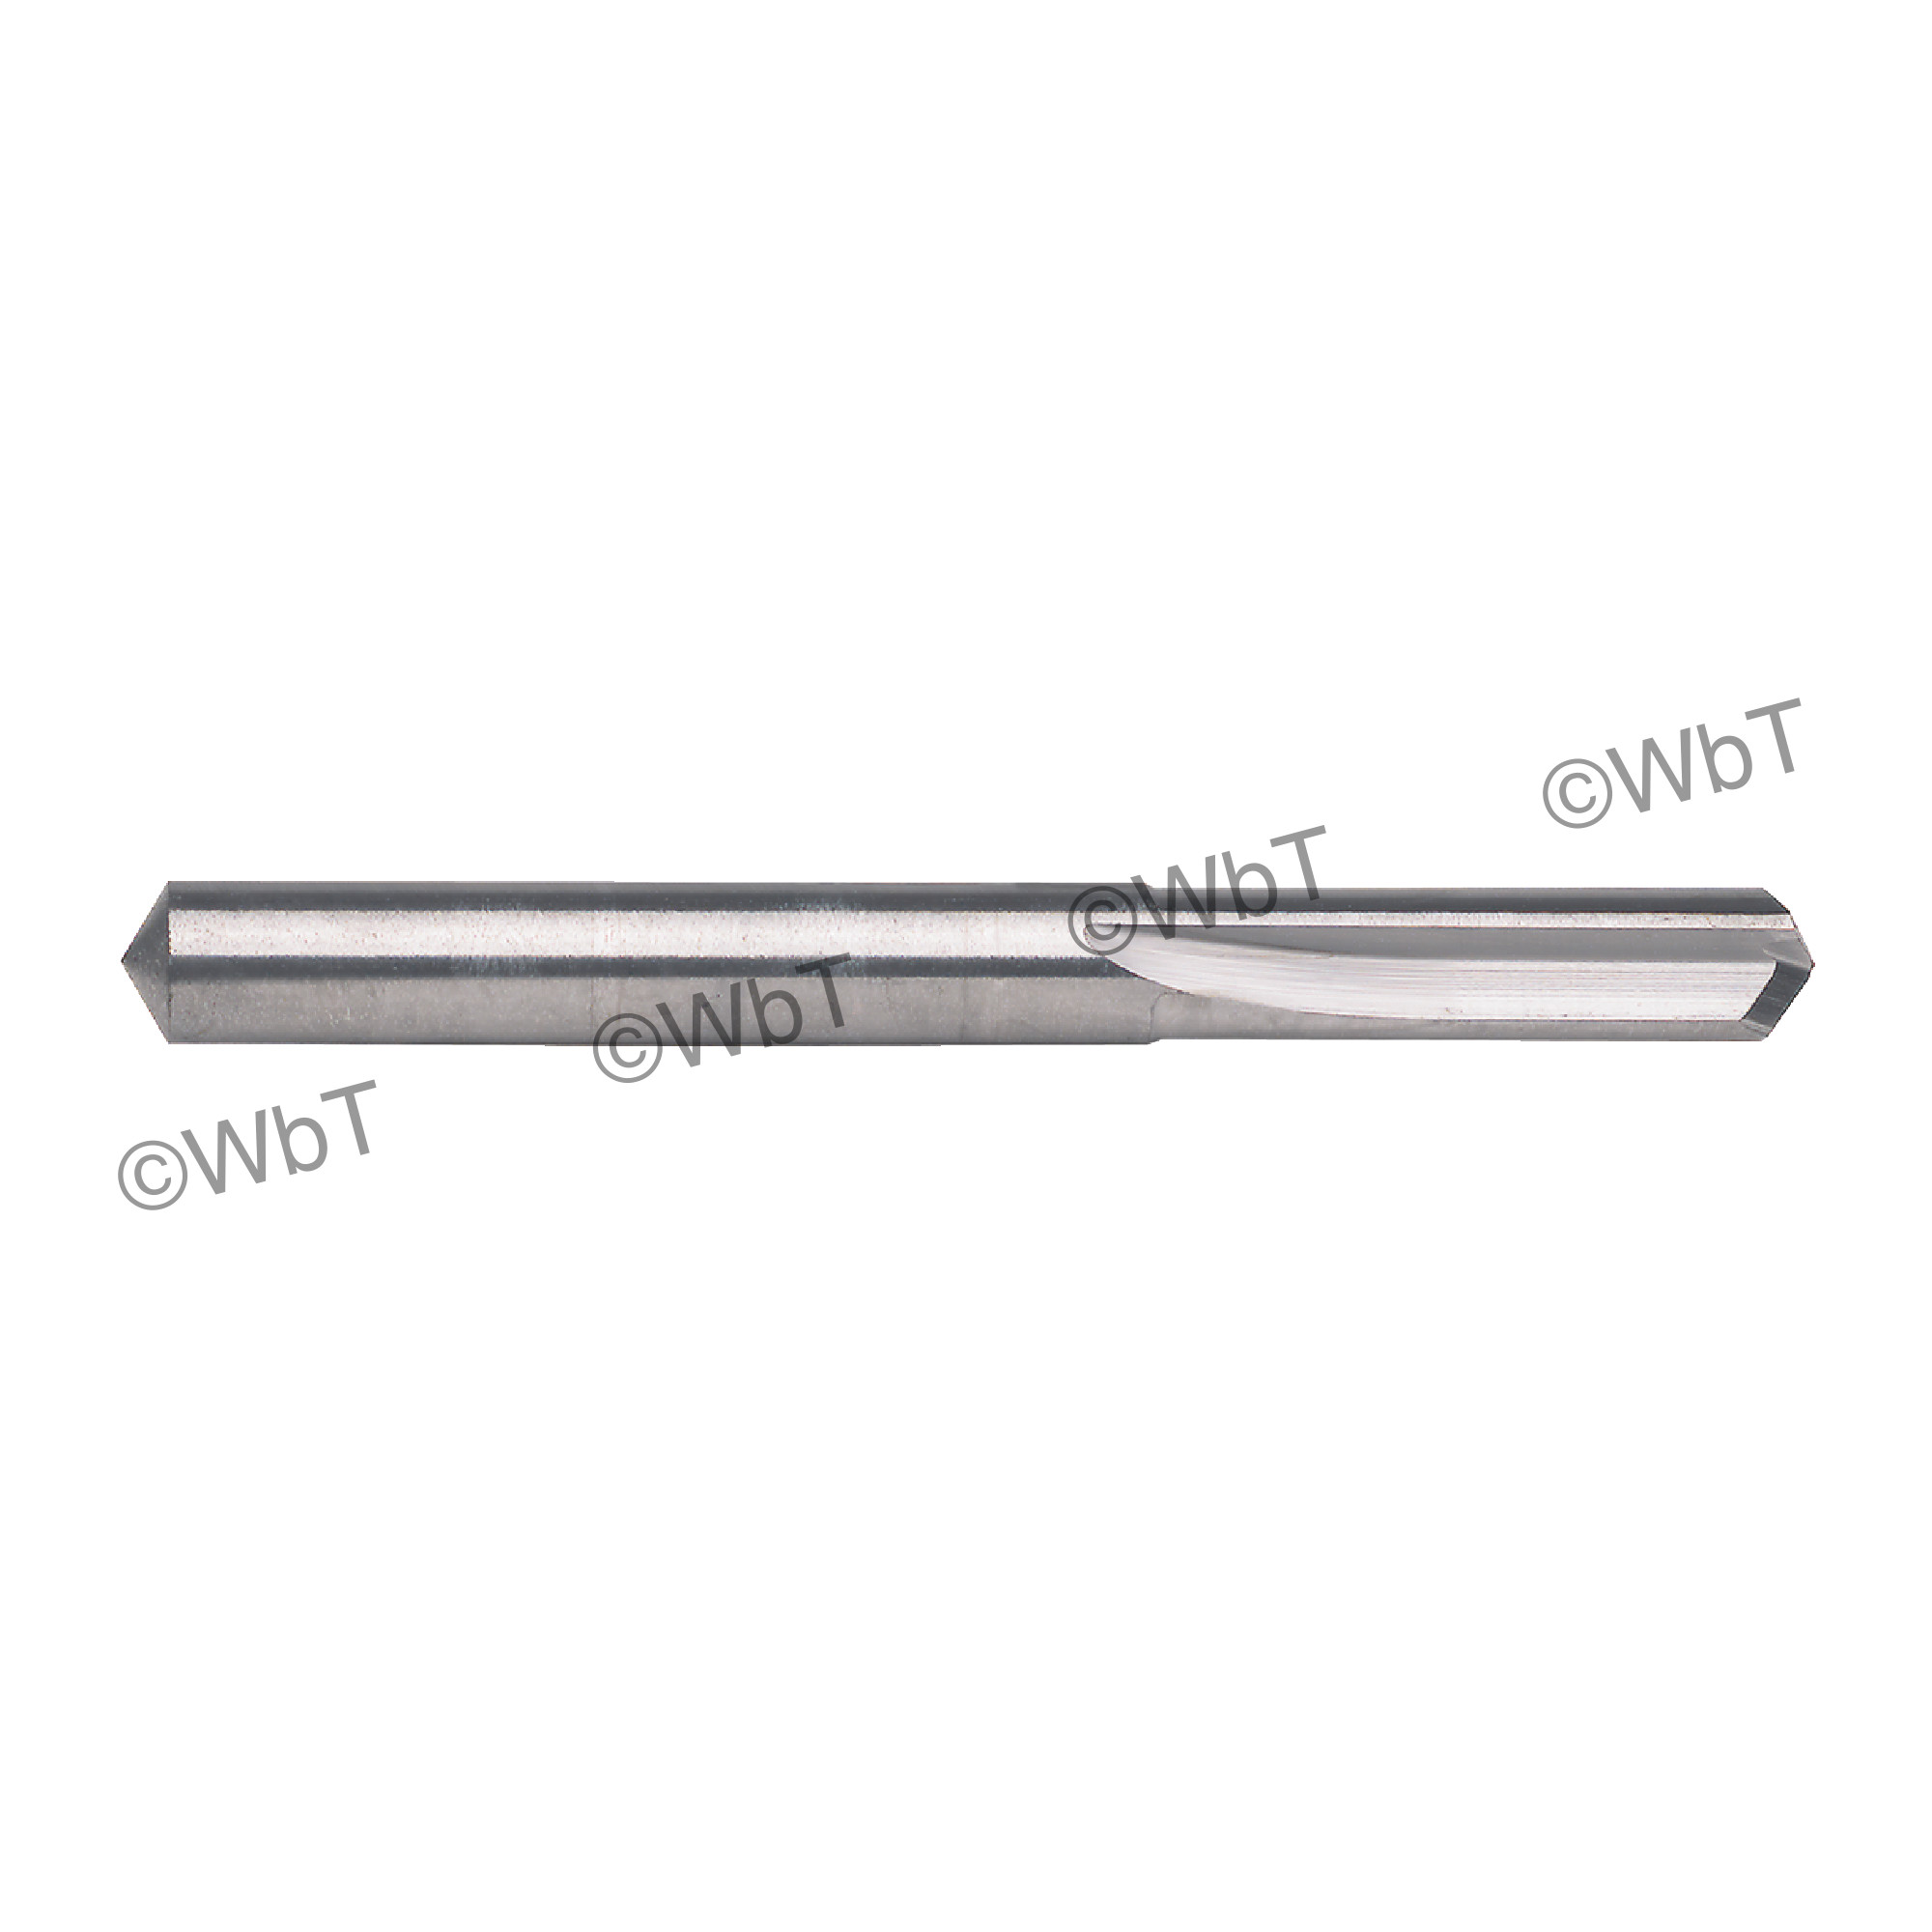 Solid Carbide Straight Flute Drills